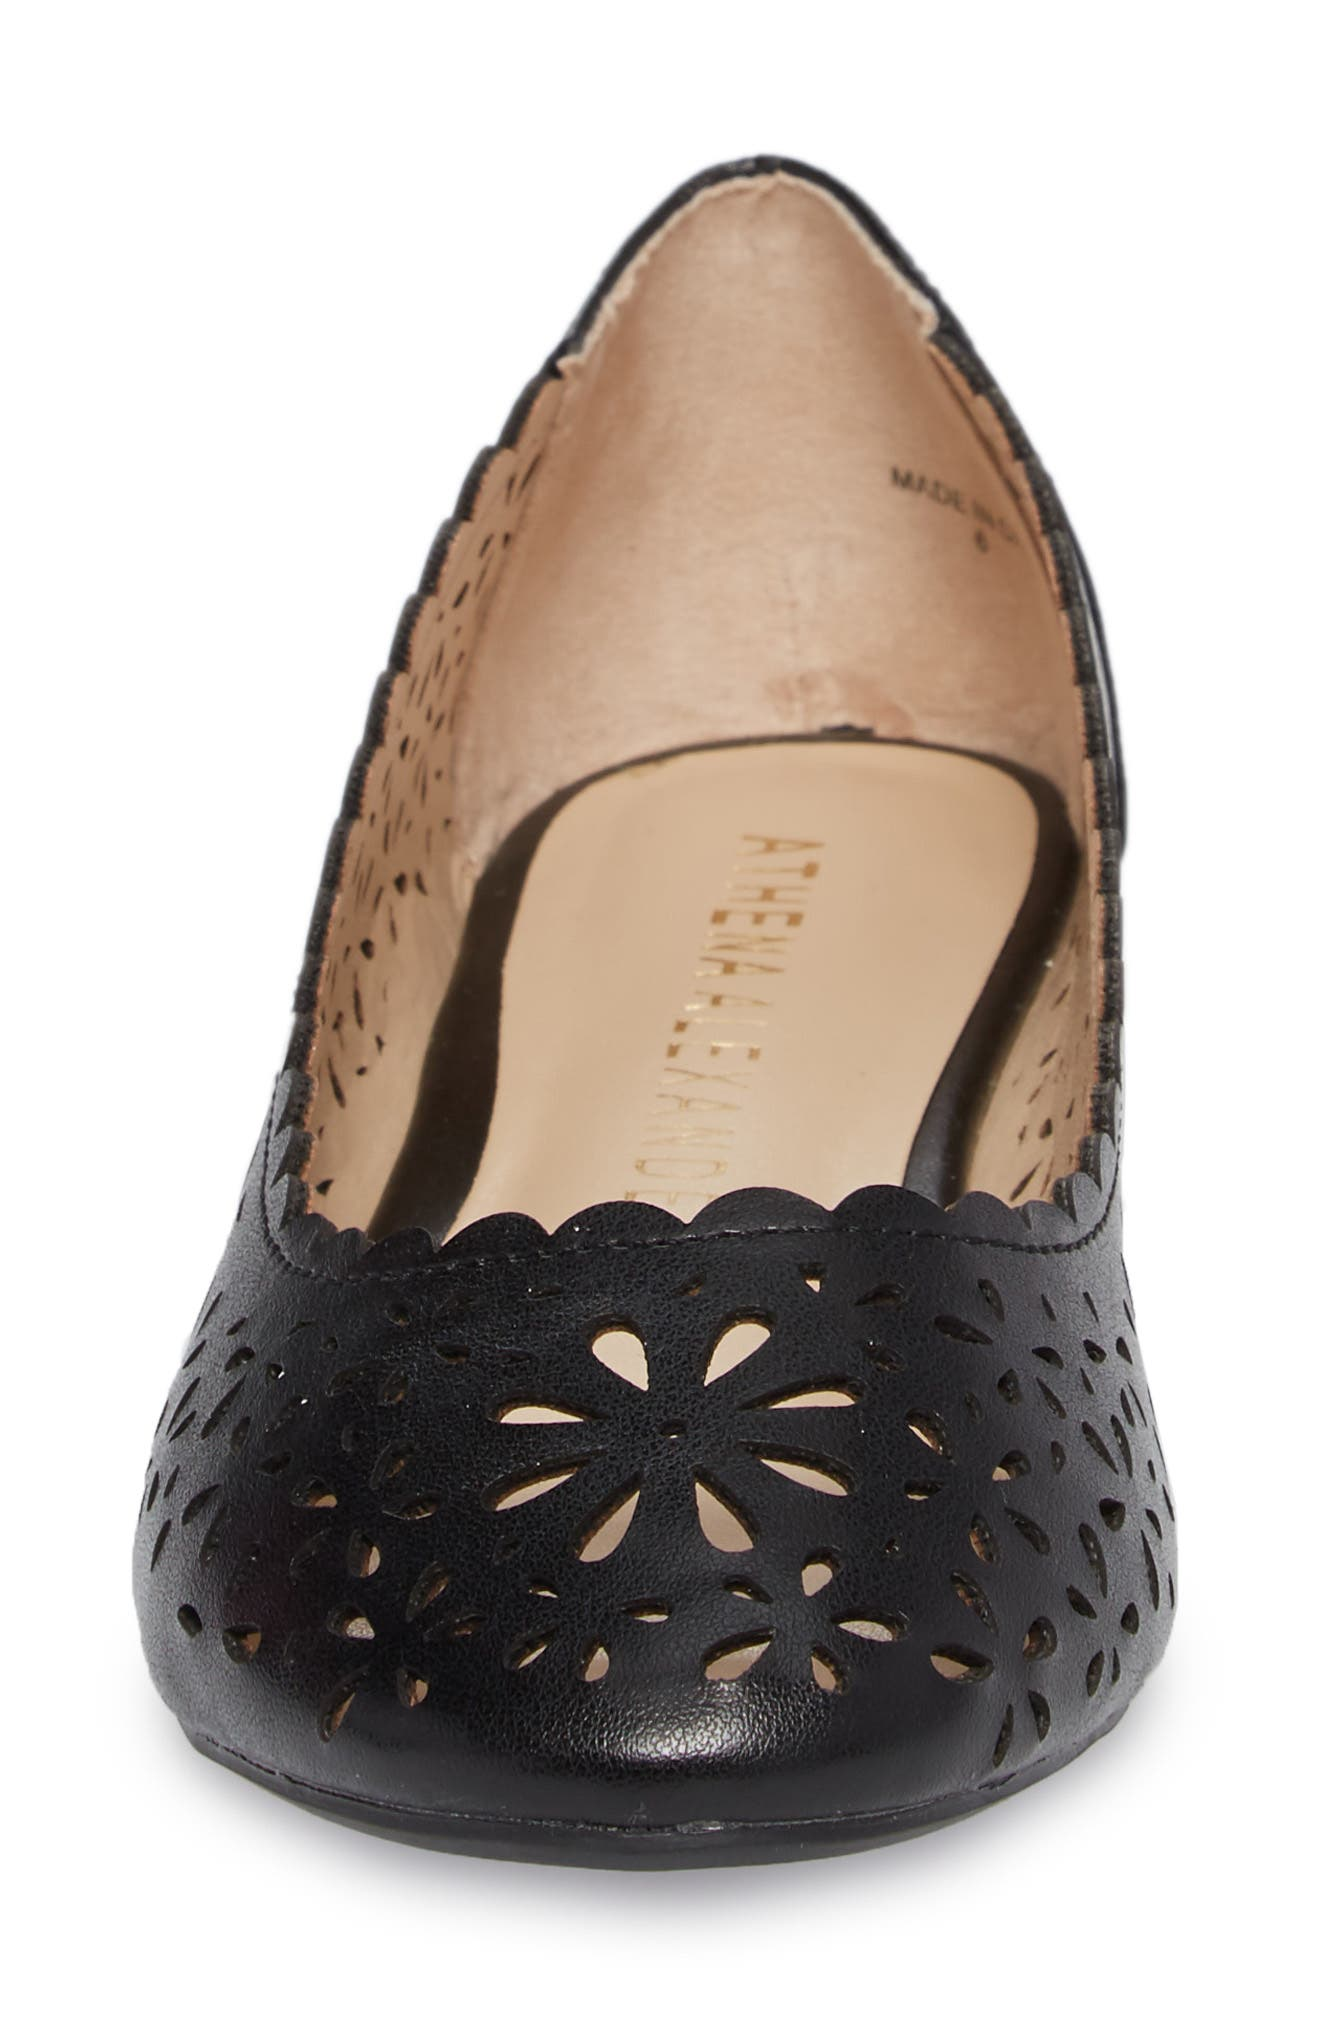 Annora Perforated Flat,                             Alternate thumbnail 4, color,                             001